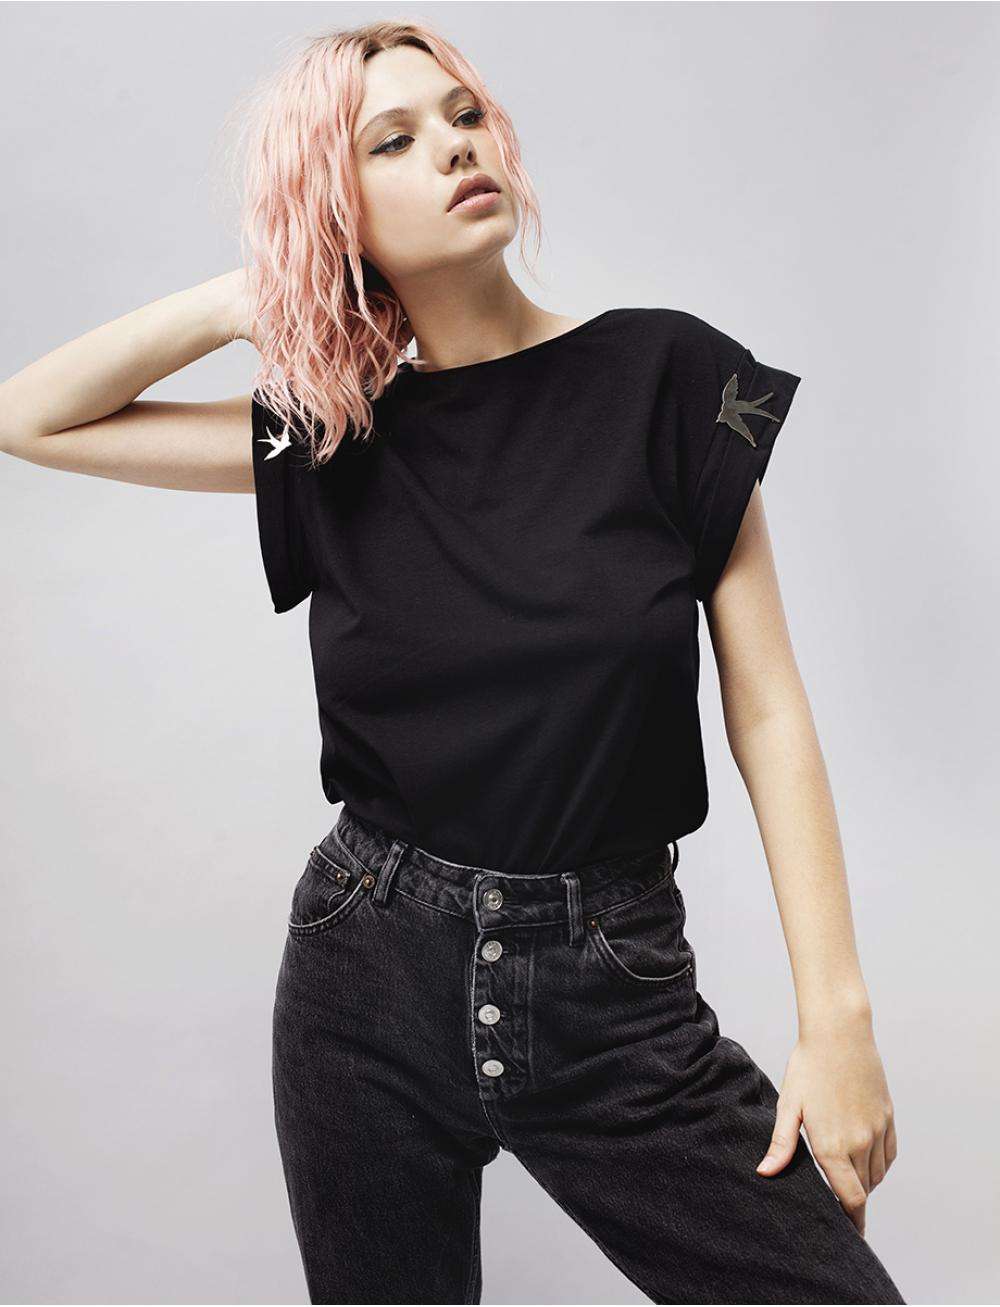 Bird Toy T-shirt - Black by Manurí on curated-crowd.com